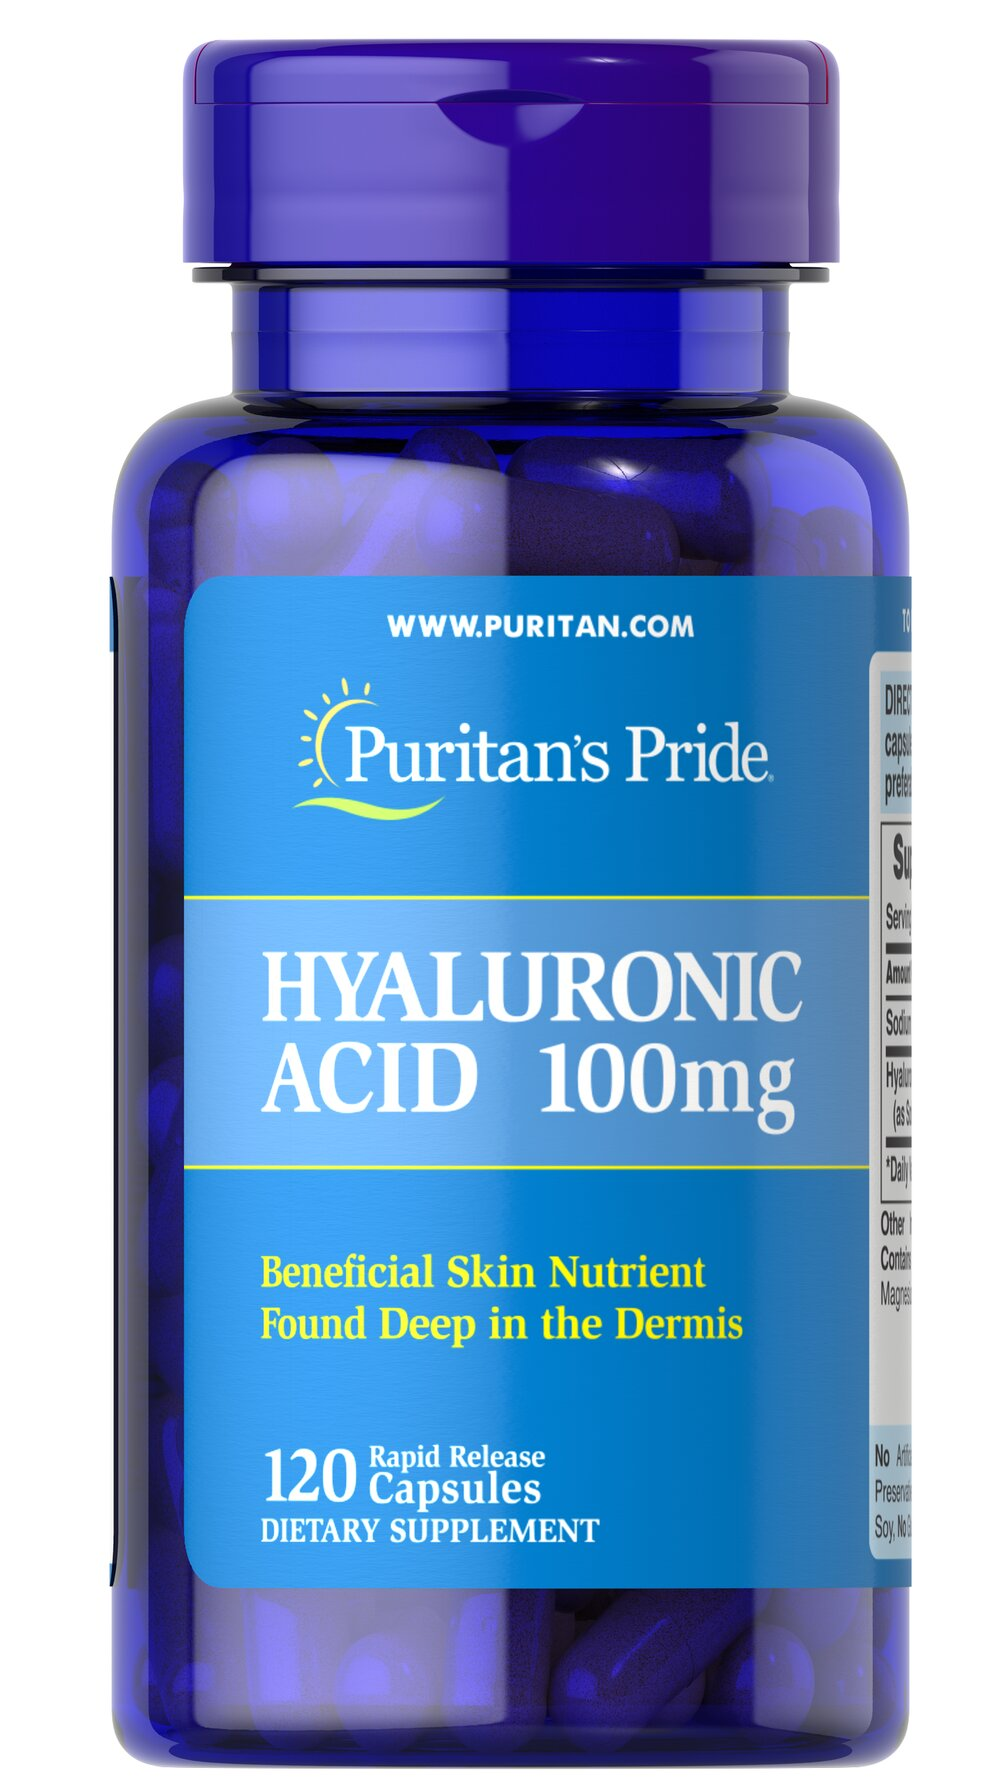 Hyaluronic Acid 100 mg <p>Helps lubricate joints**</p>   <p>Hyaluronic Acid is a polysaccharide found in almost all adult connective tissue, including joints, ligaments, tendons and skin.** Just one Hyaluronic Acid capsule a day can help maintain the fluid between your joints, providing the cushioning and lubrication necessary for easy movement.**</p> 120 Capsules 100 mg $84.99